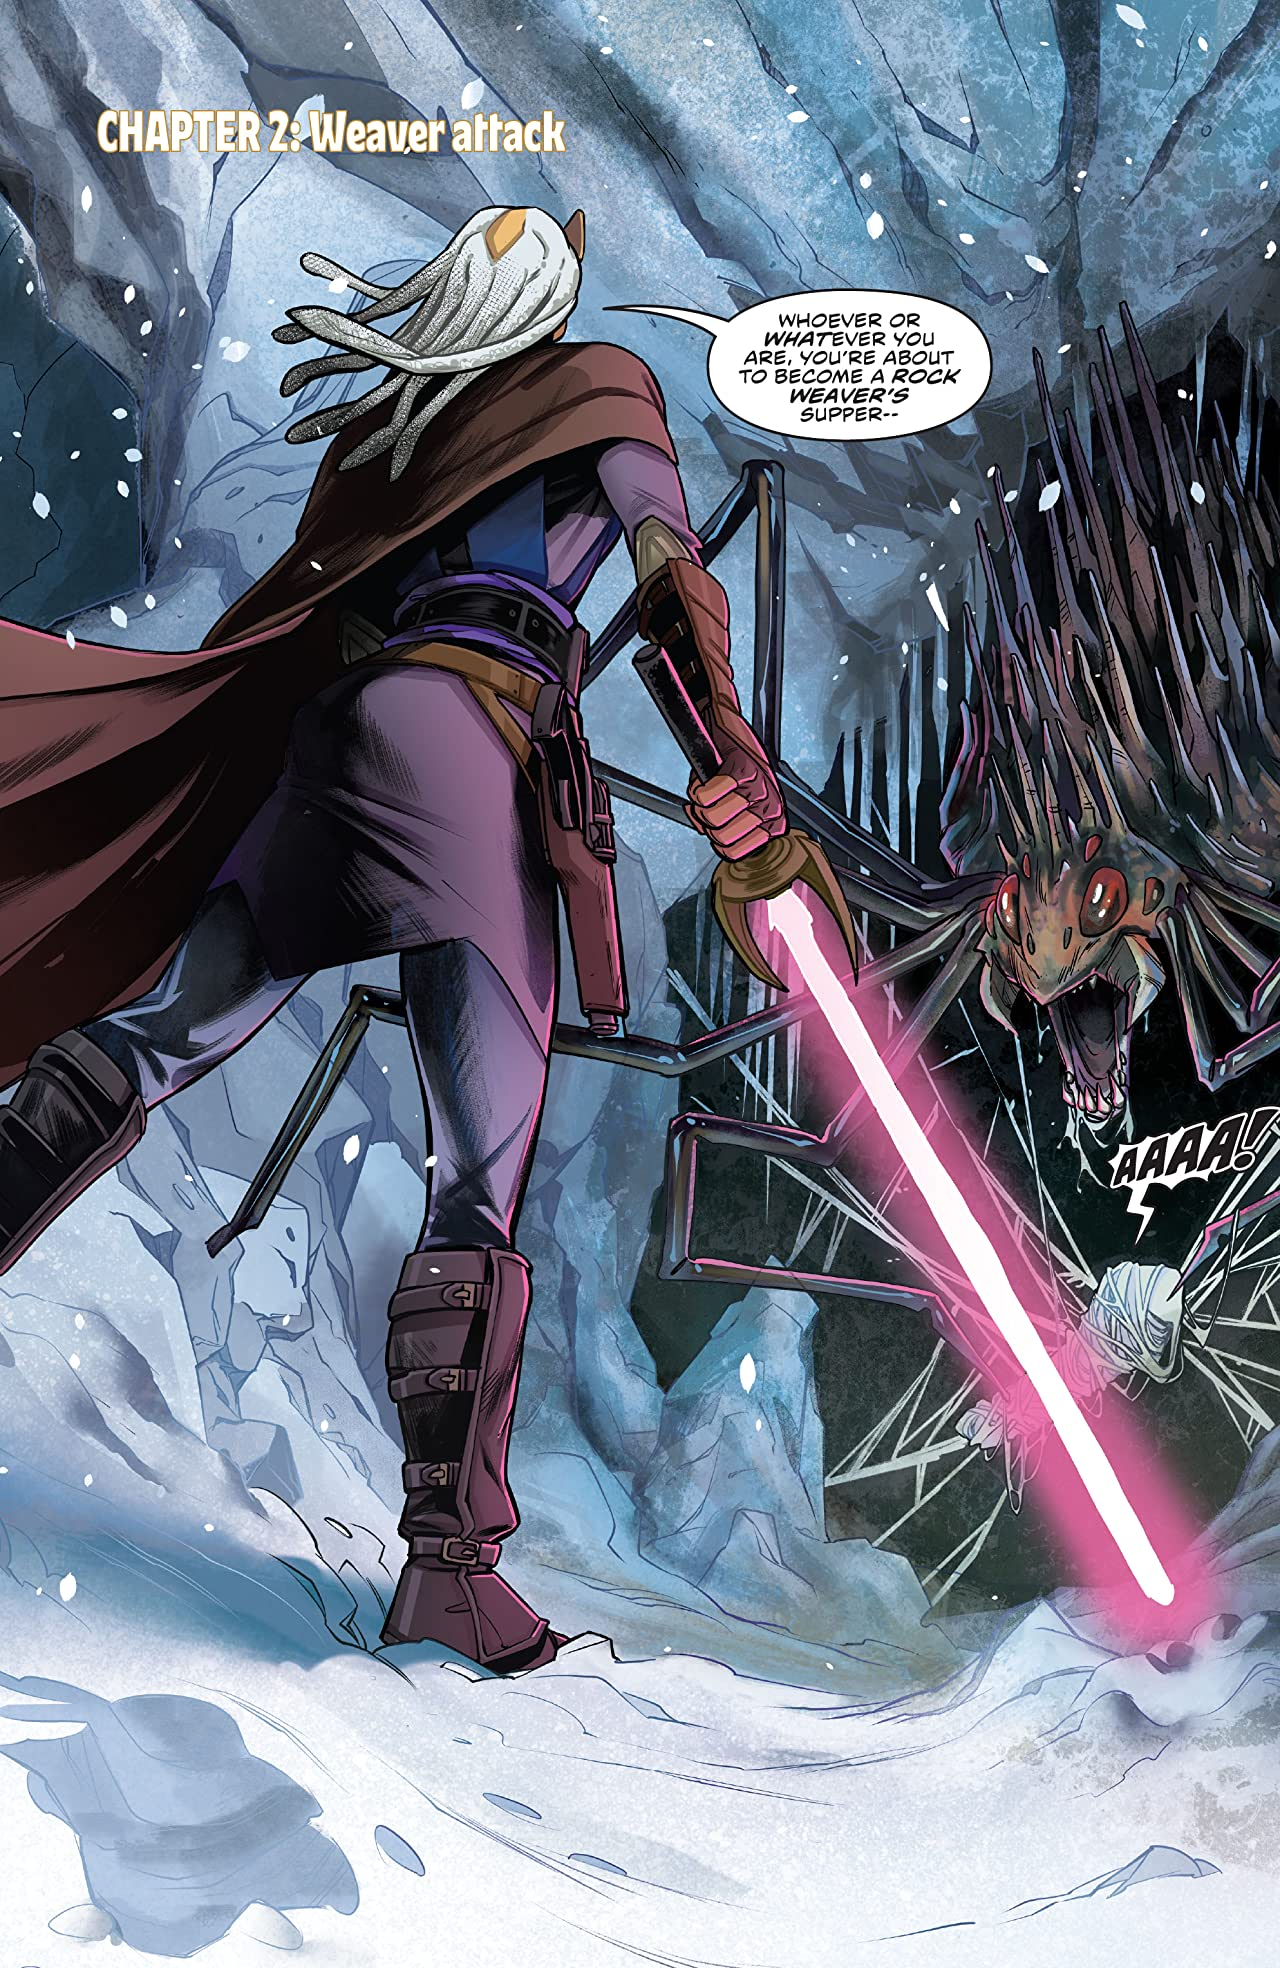 Star Wars: The High Republic Adventures—The Monster of Temple Peak #2 (of 4)